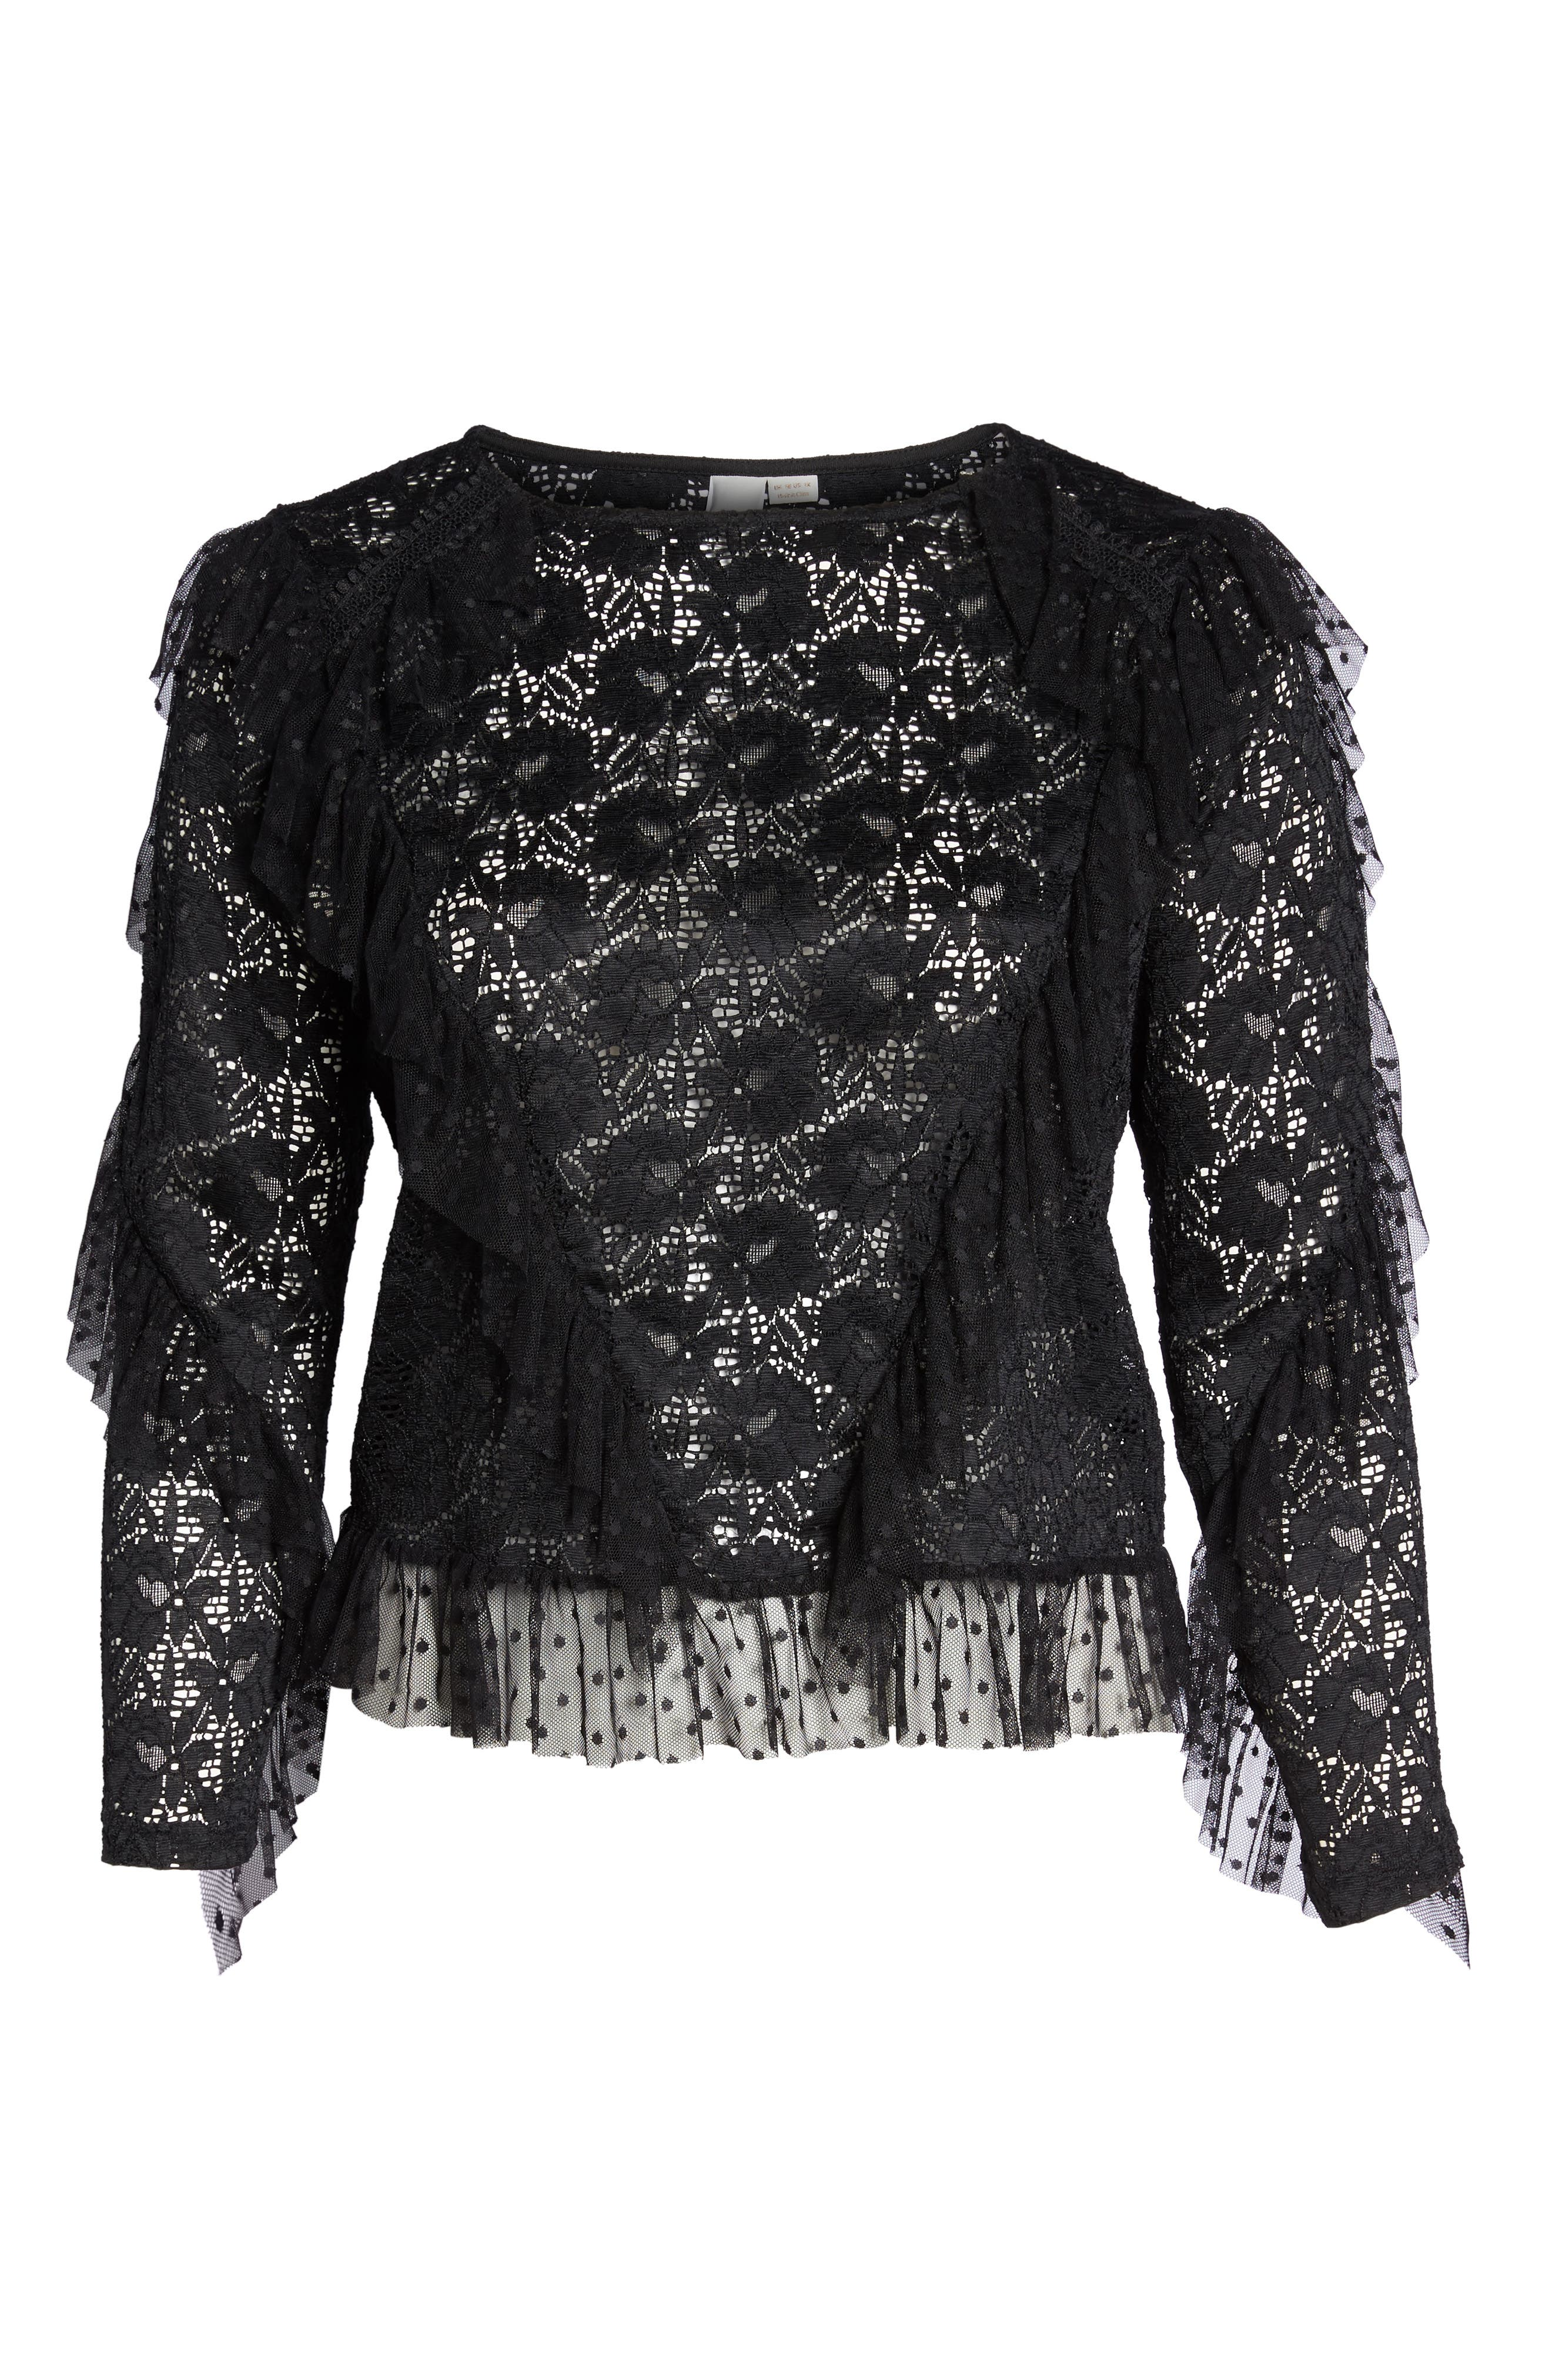 LOST INK,                             Ruffle Trim Lace Top,                             Alternate thumbnail 7, color,                             001